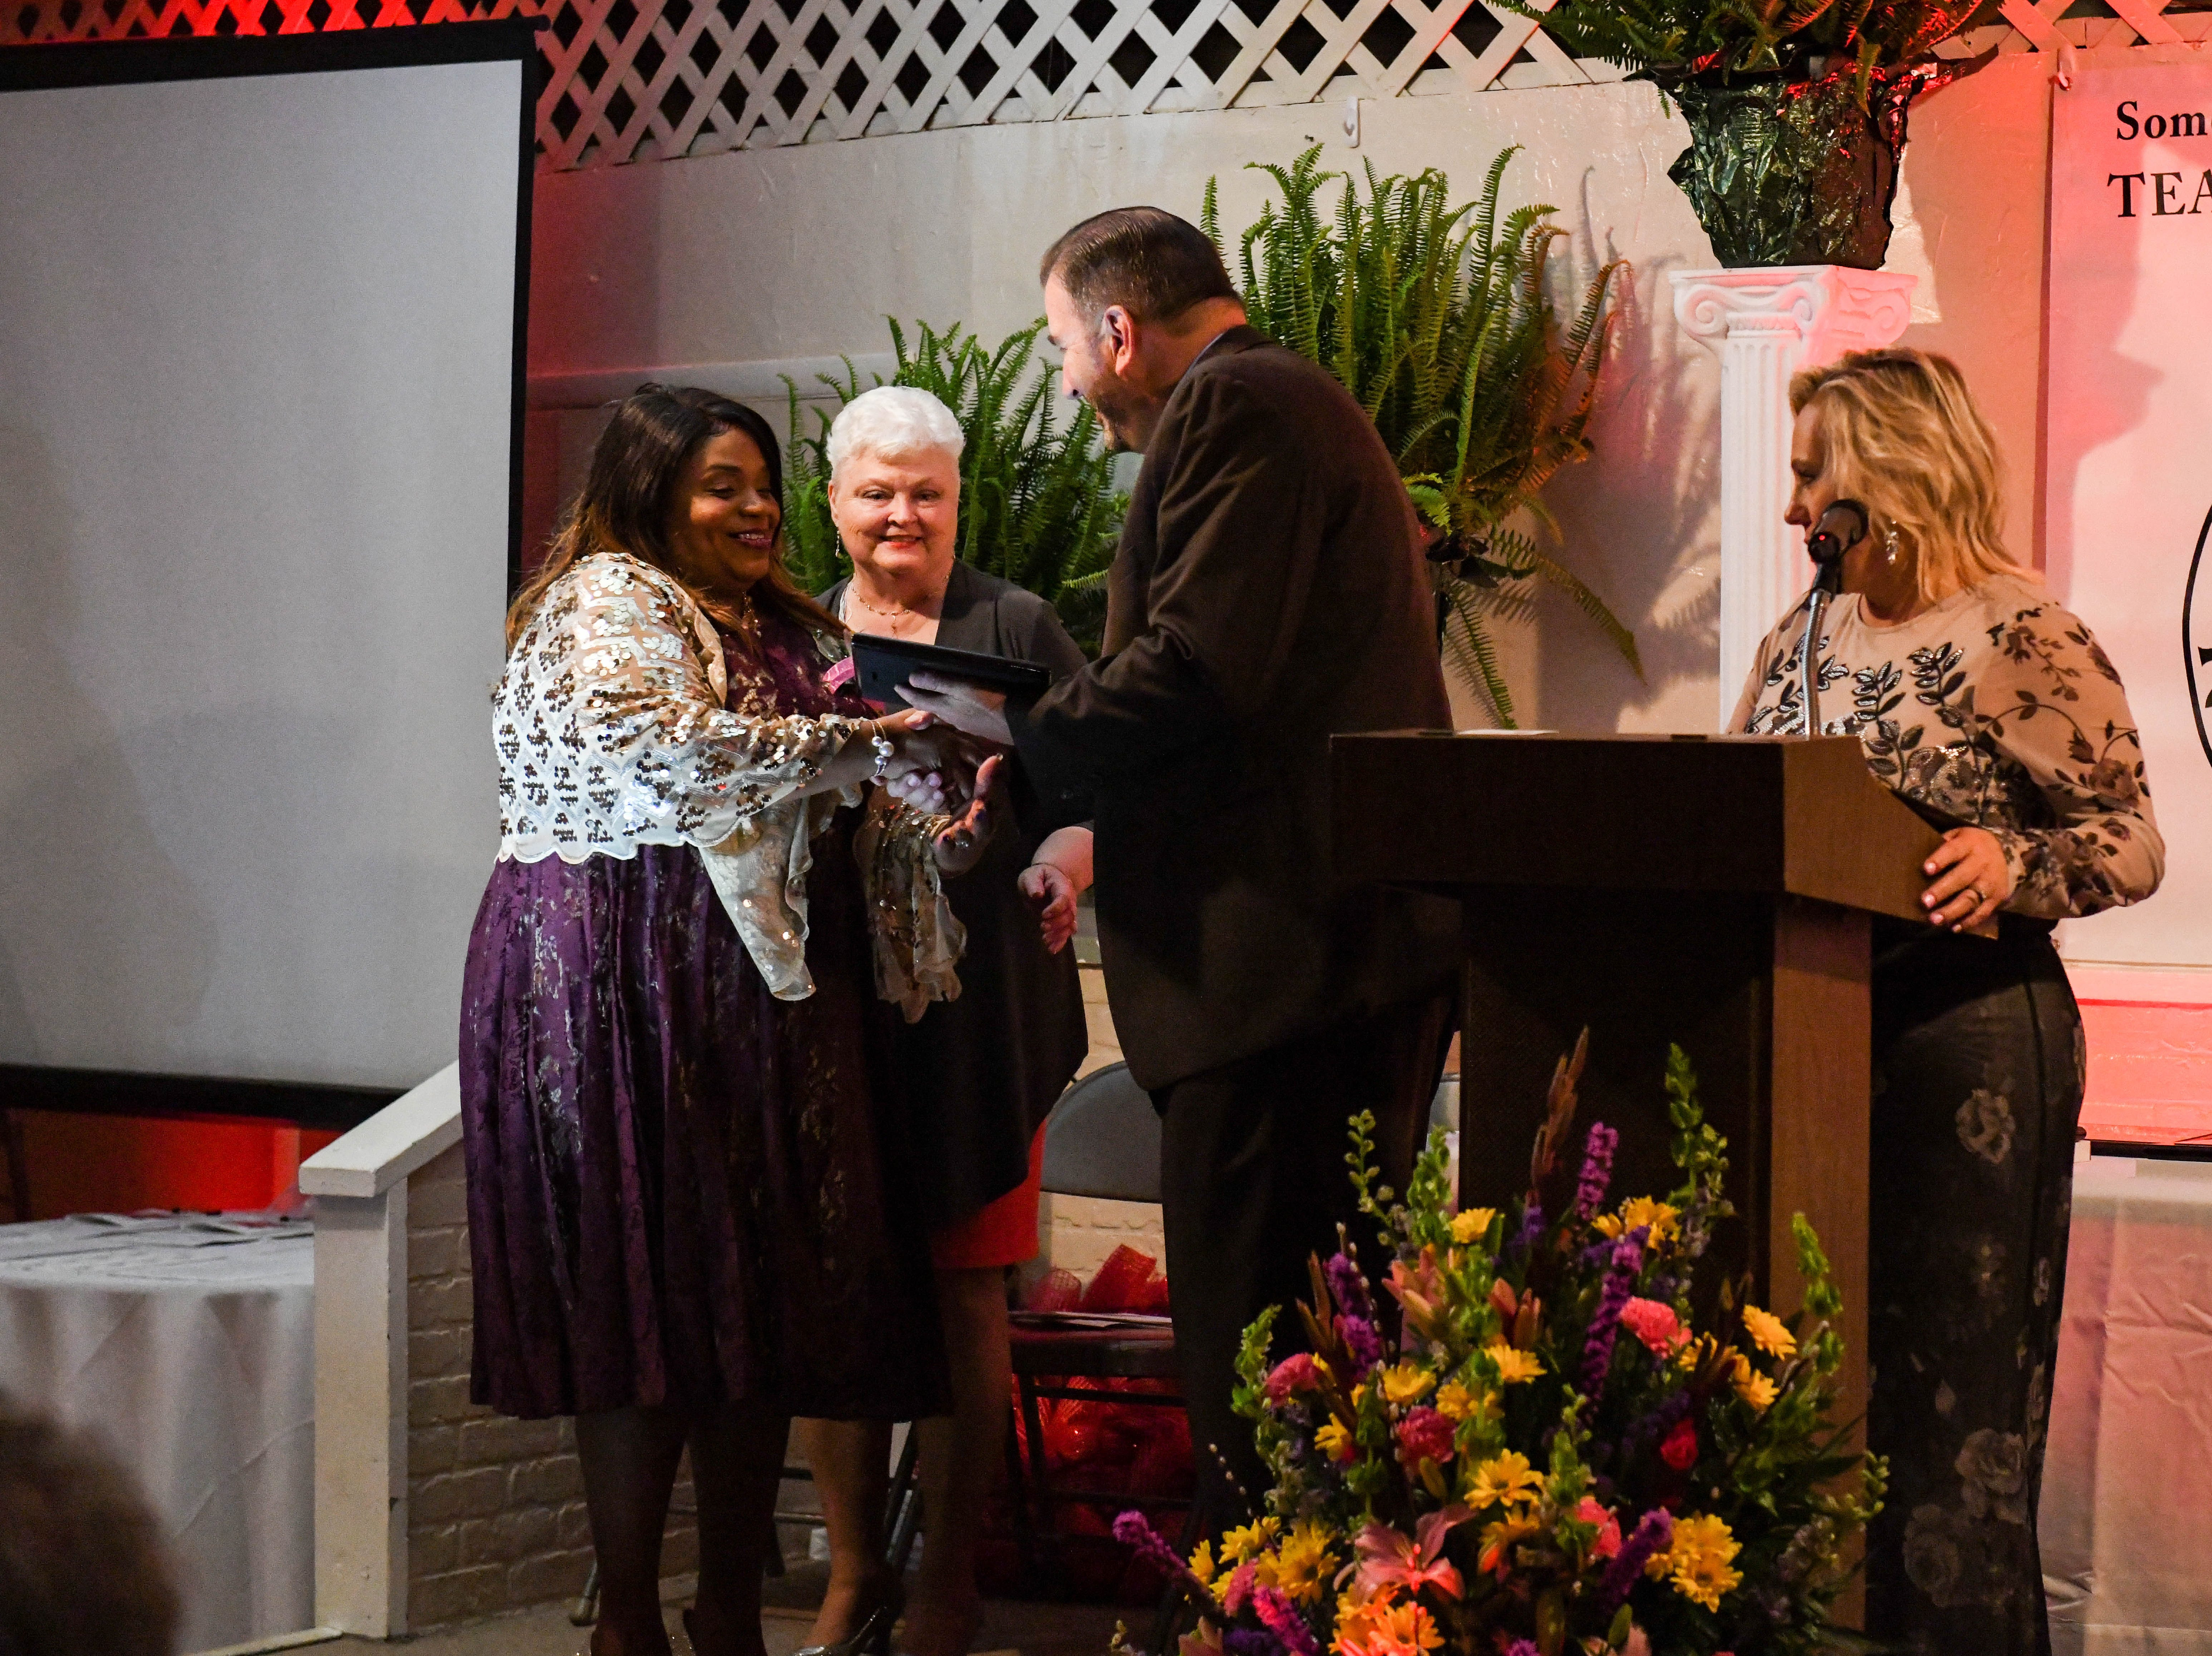 Andranette Holden-Hall, Somerset County Secondary School teacher of the year, receives a plaque at the banquet on Friday, April 5, 2019.